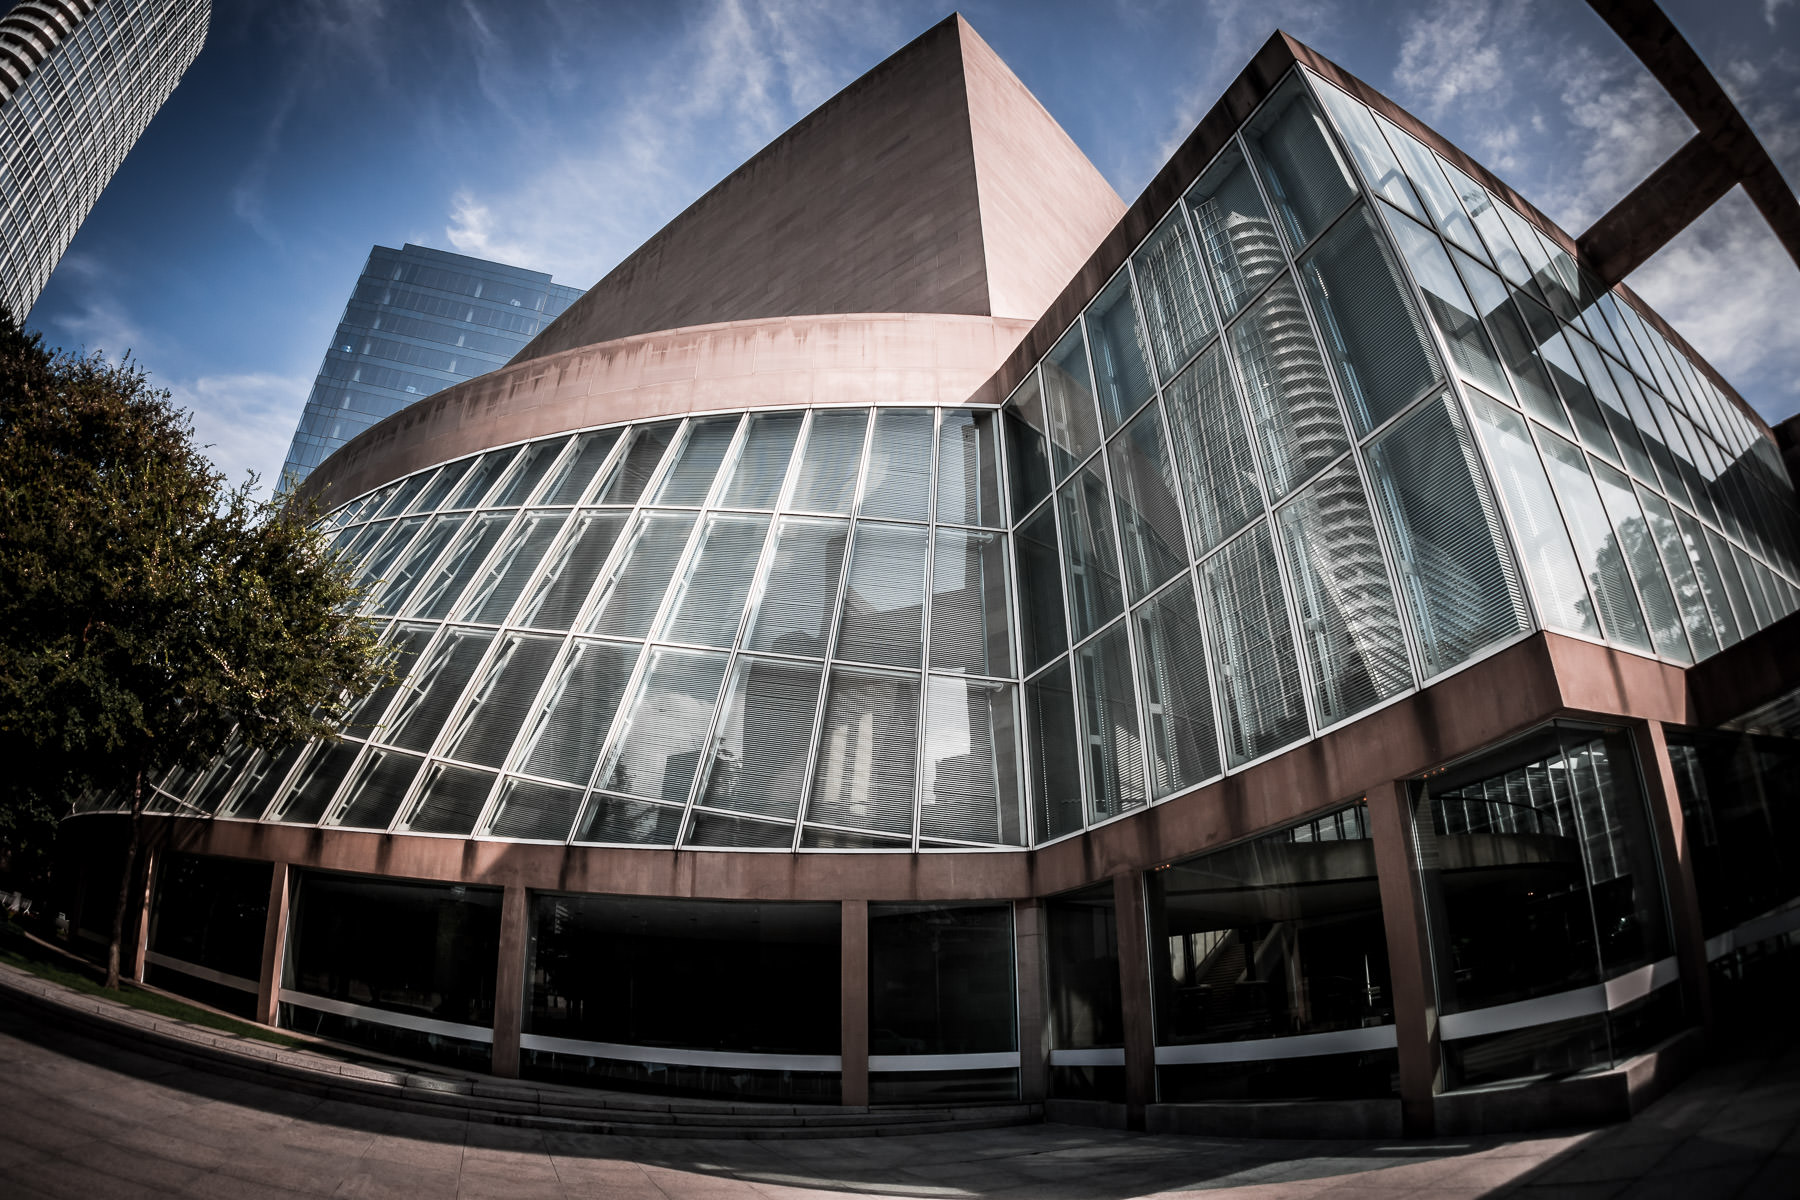 The unique architecture of I.M. Pei-designed Meyerson Symphony Center in the Dallas Arts District.